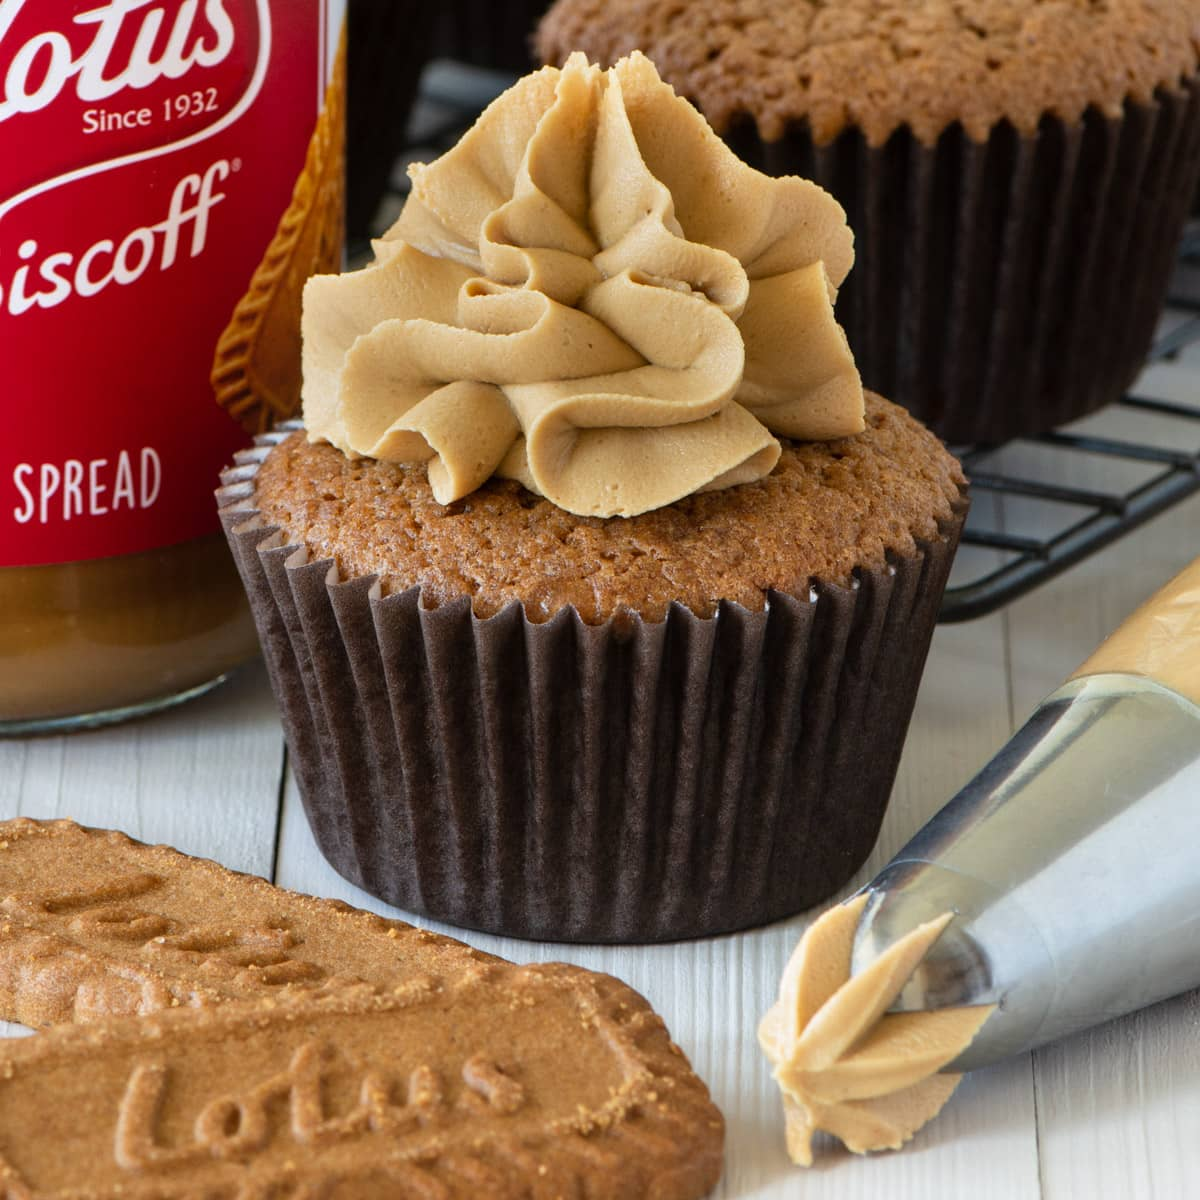 Cupcake topped with Biscoff buttercream.